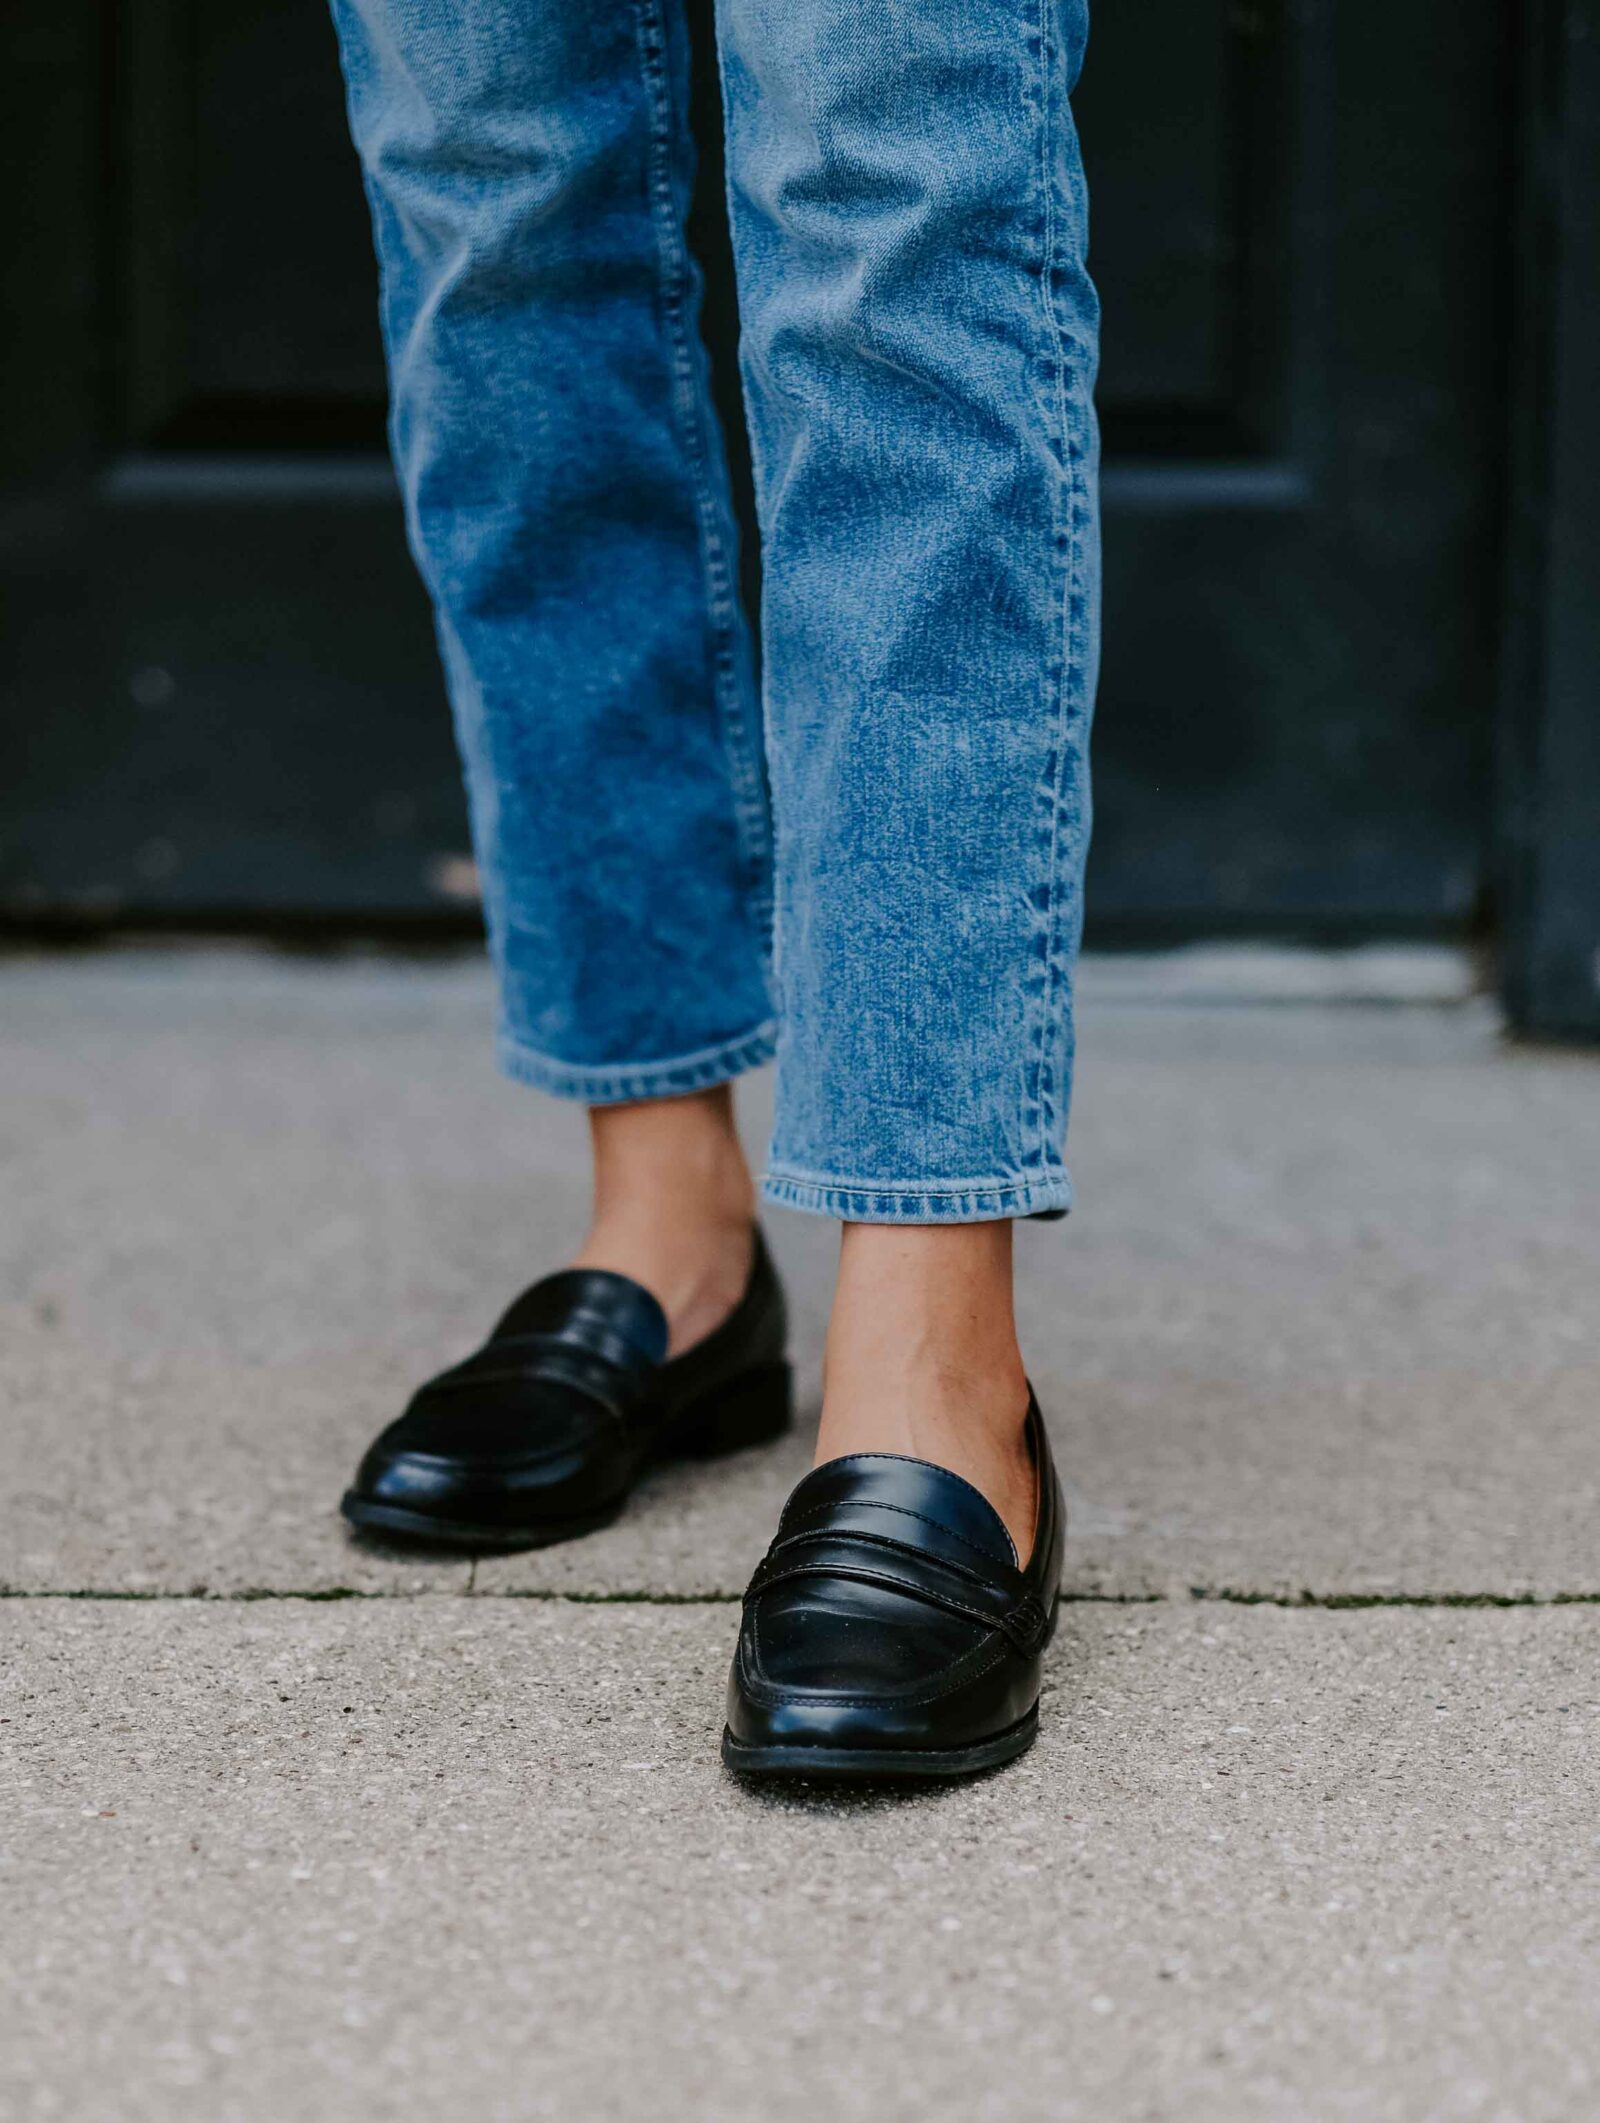 loafers outfit